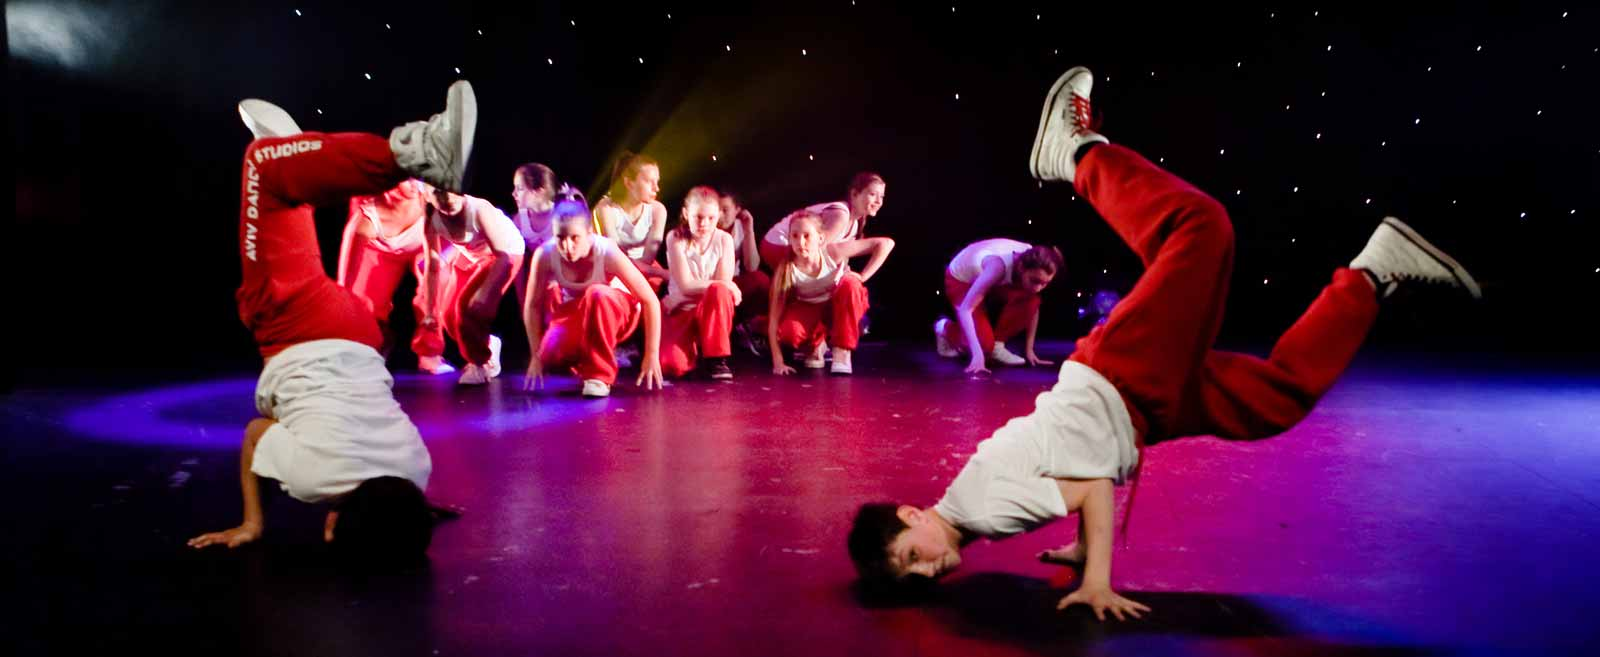 A hip hop dance performance at the Aviv Dance Studios' annual show